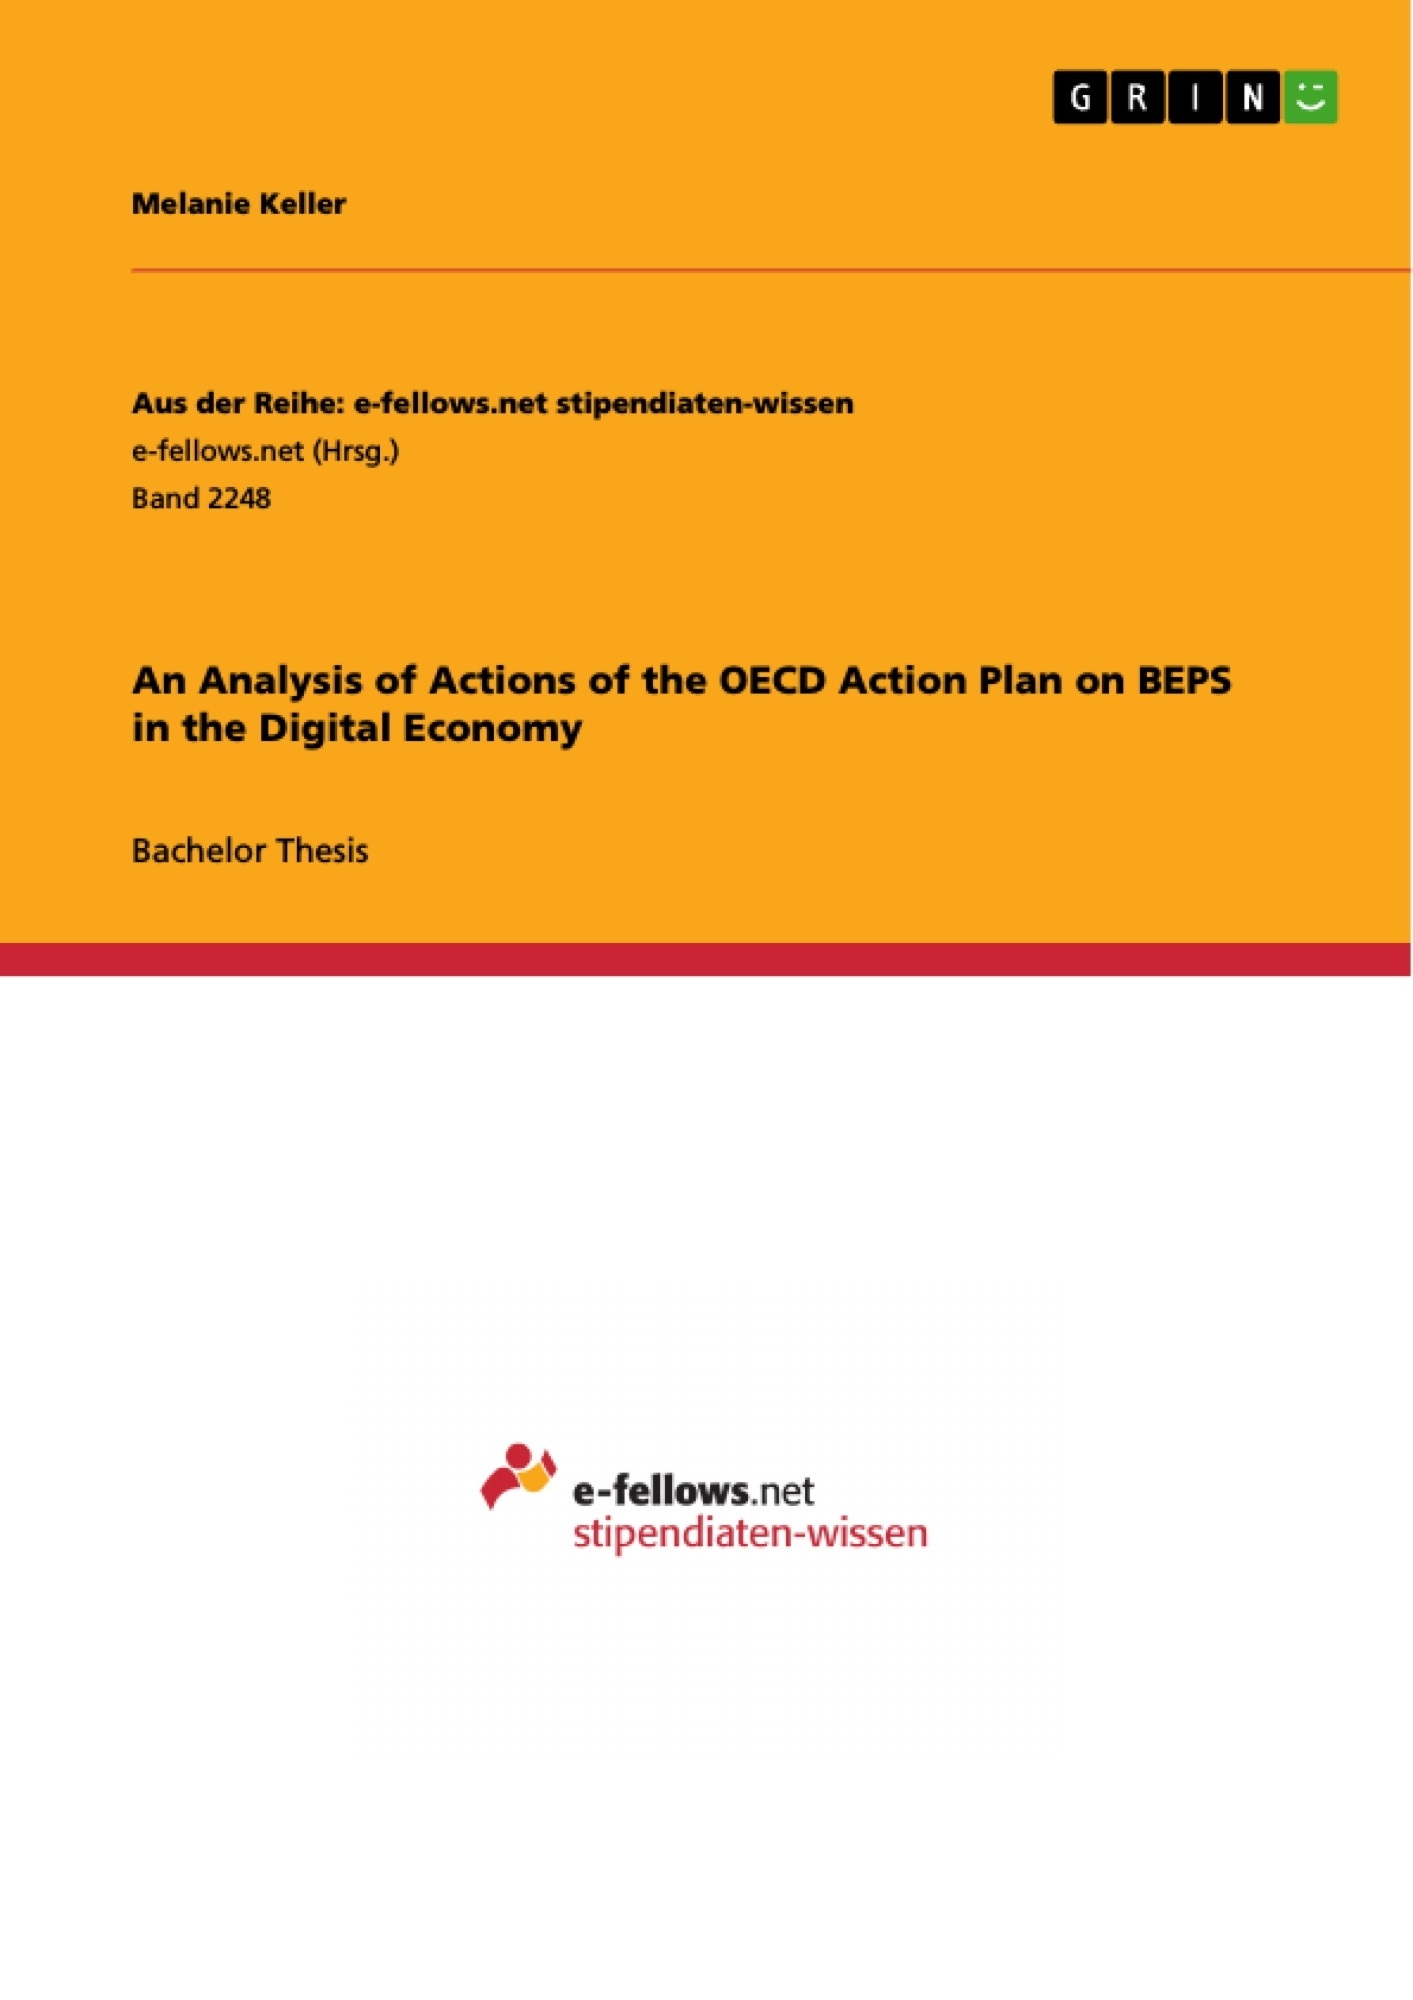 Title: An Analysis of Actions of the OECD Action Plan on BEPS in the Digital Economy